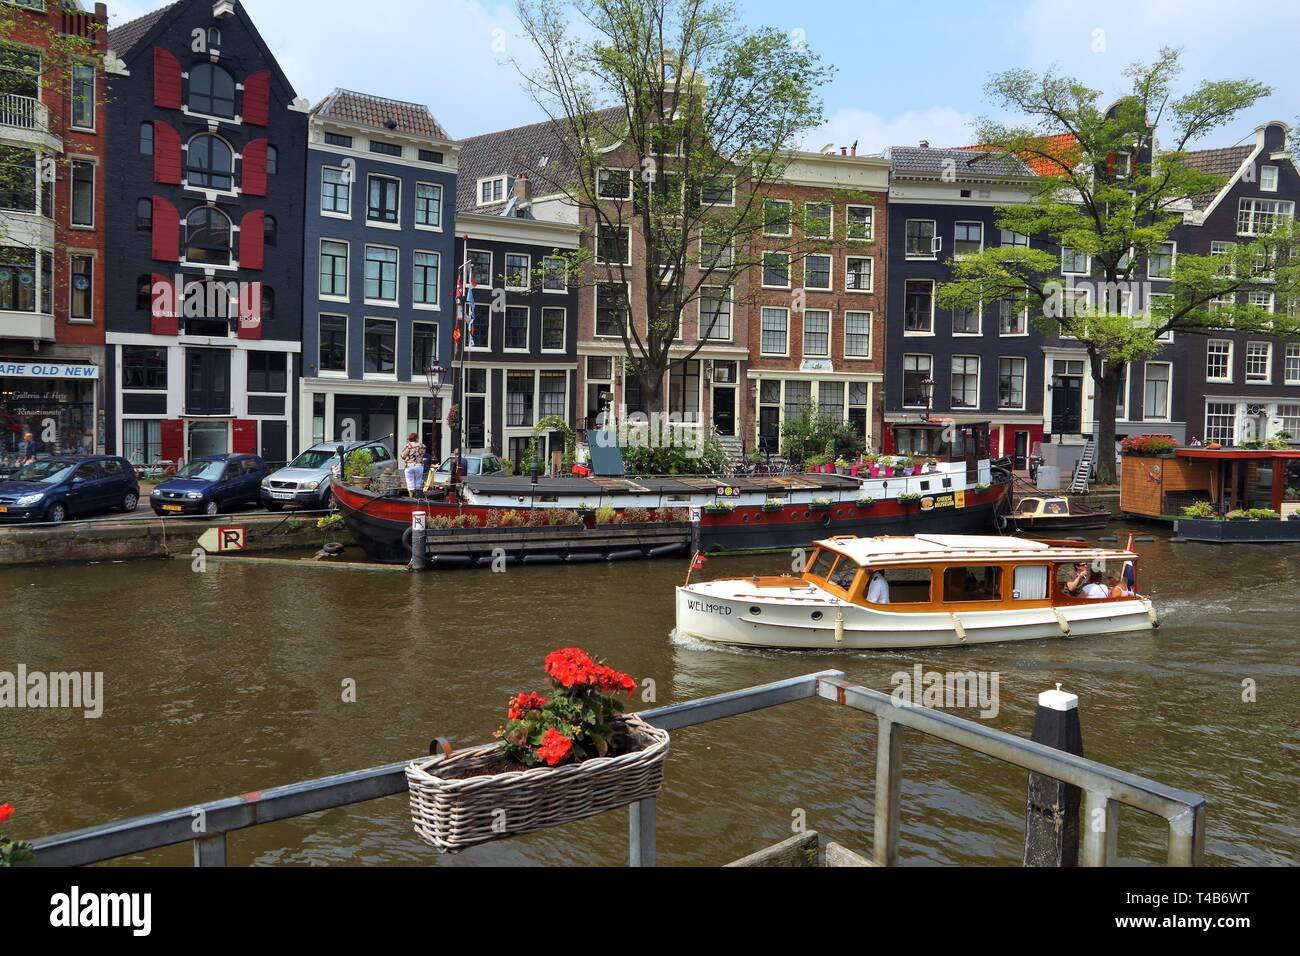 AMSTERDAM, NETHERLANDS - JULY 7, 2017: People visit Prinsengracht canal in Amsterdam, Netherlands. Amsterdam is the capital city of The Netherlands. - Stock Image